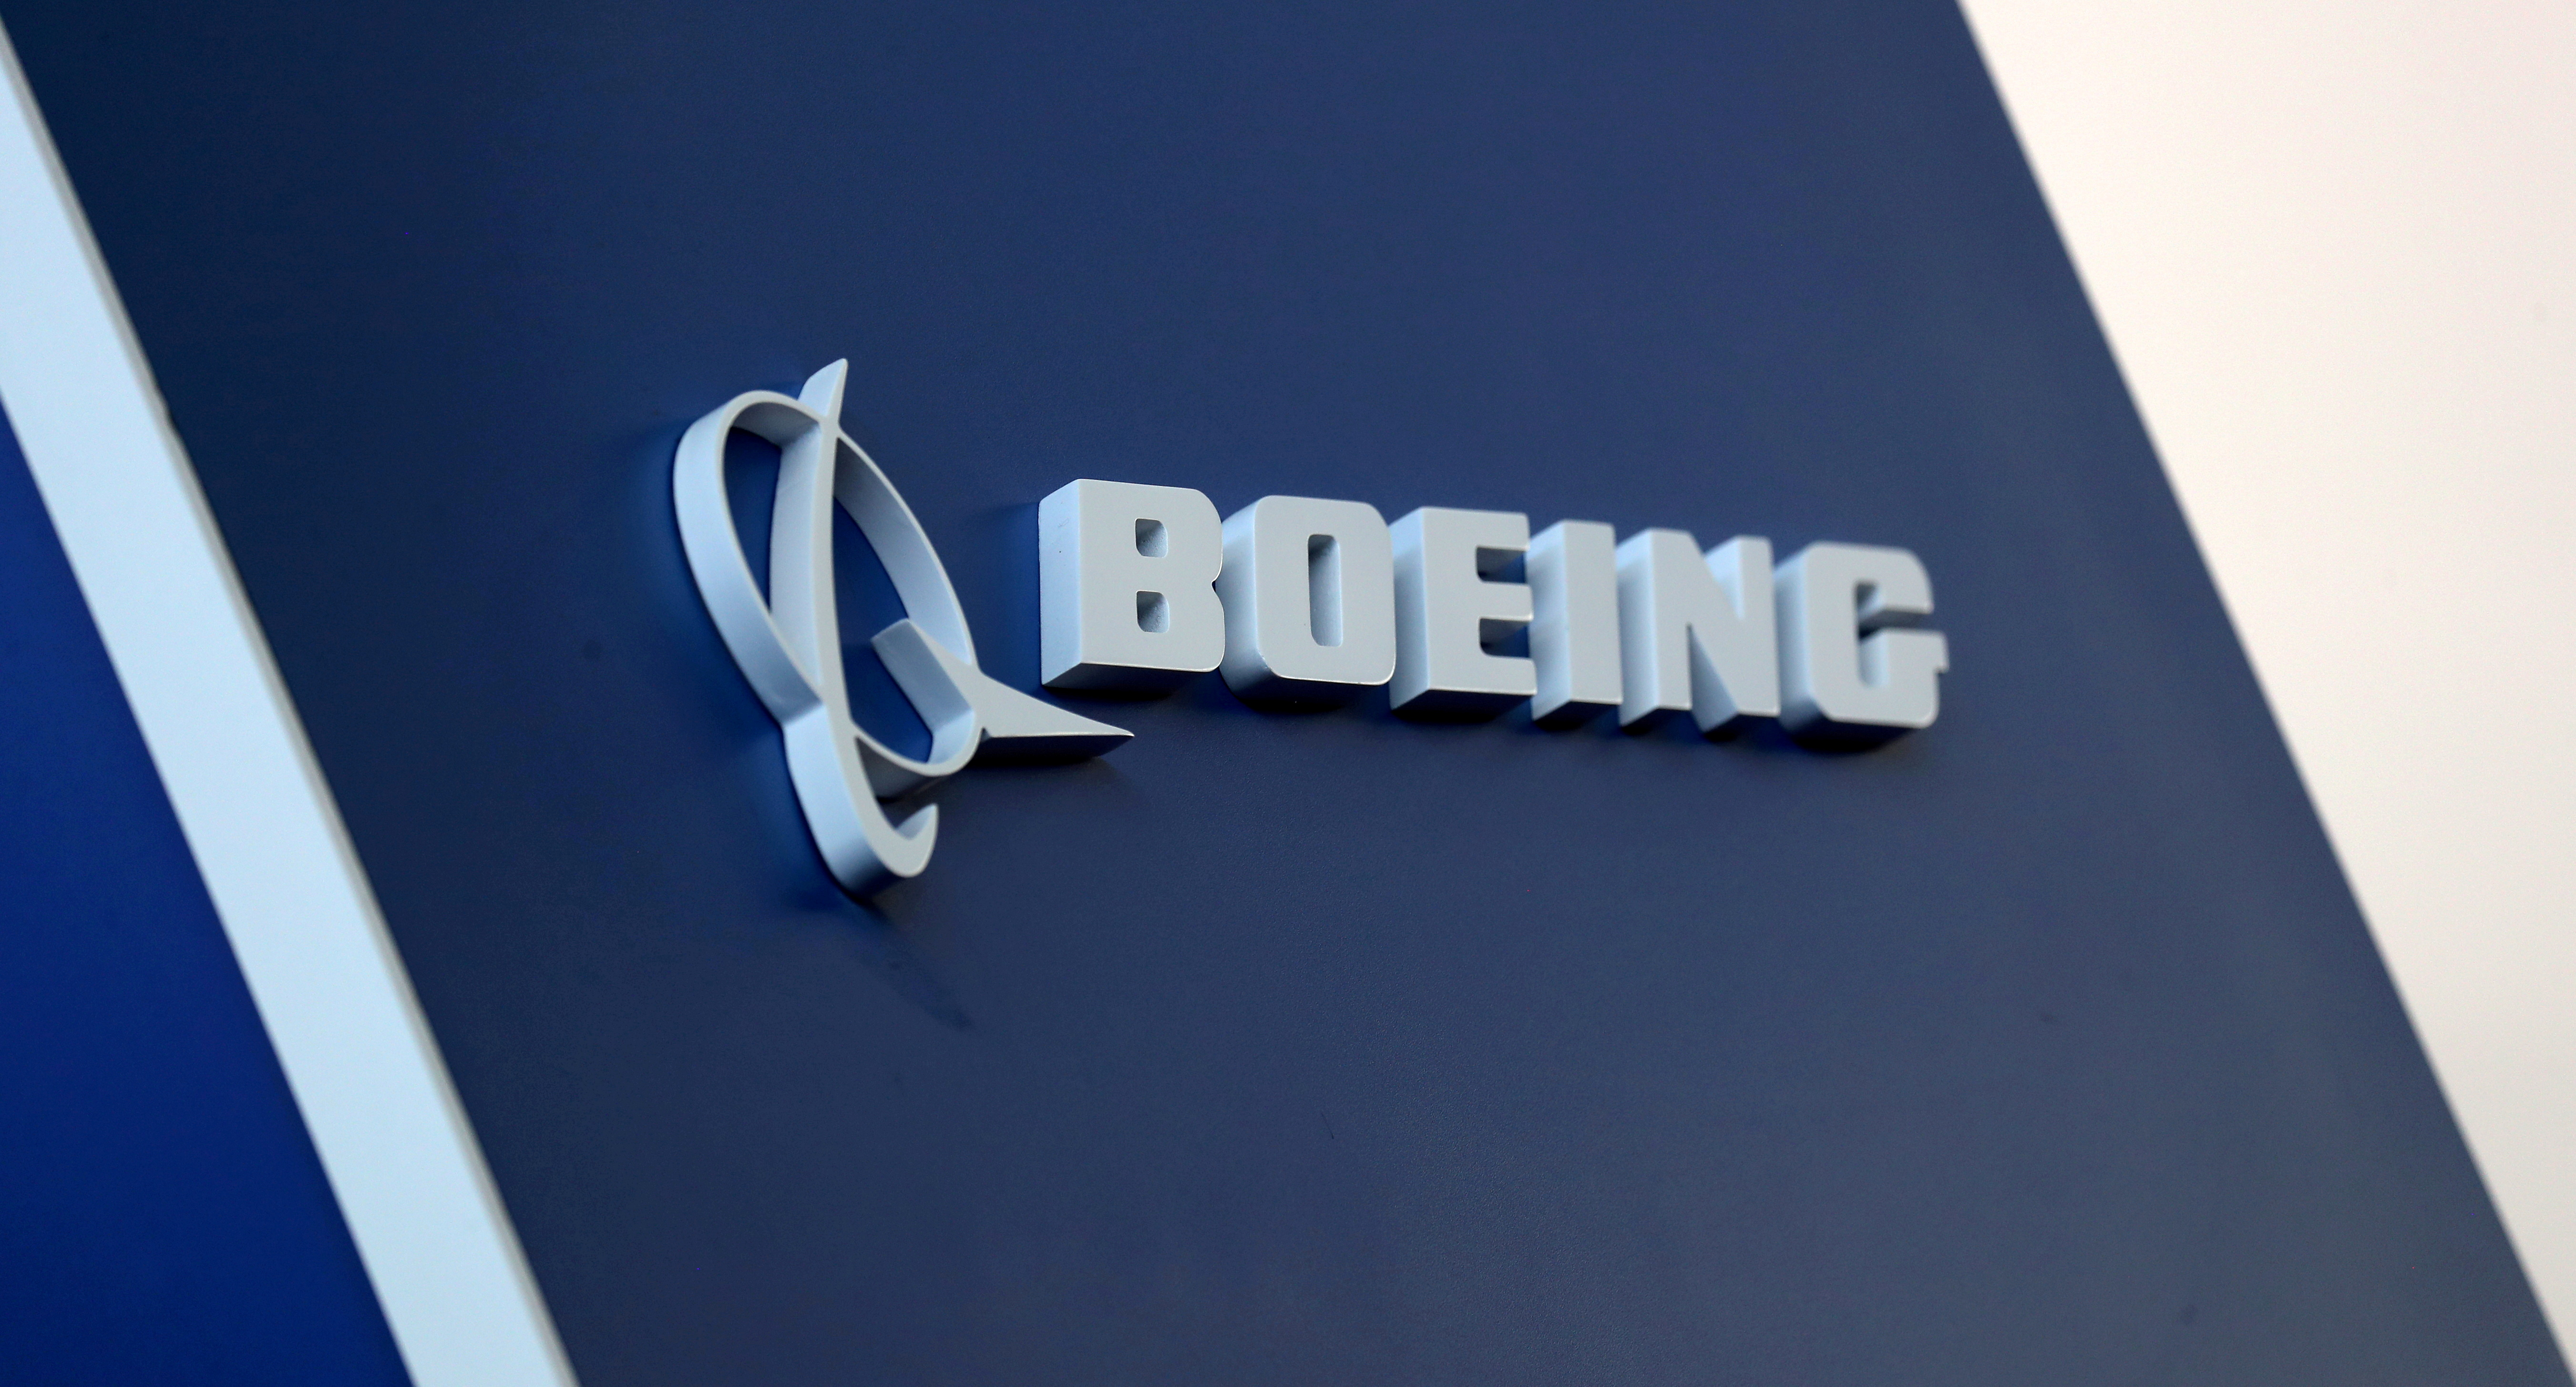 The Boeing logo is pictured at the Latin American Business Aviation Conference & Exhibition fair at Congonhas Airport in Sao Paulo, Brazil August 14, 2018. REUTERS/Paulo Whitaker